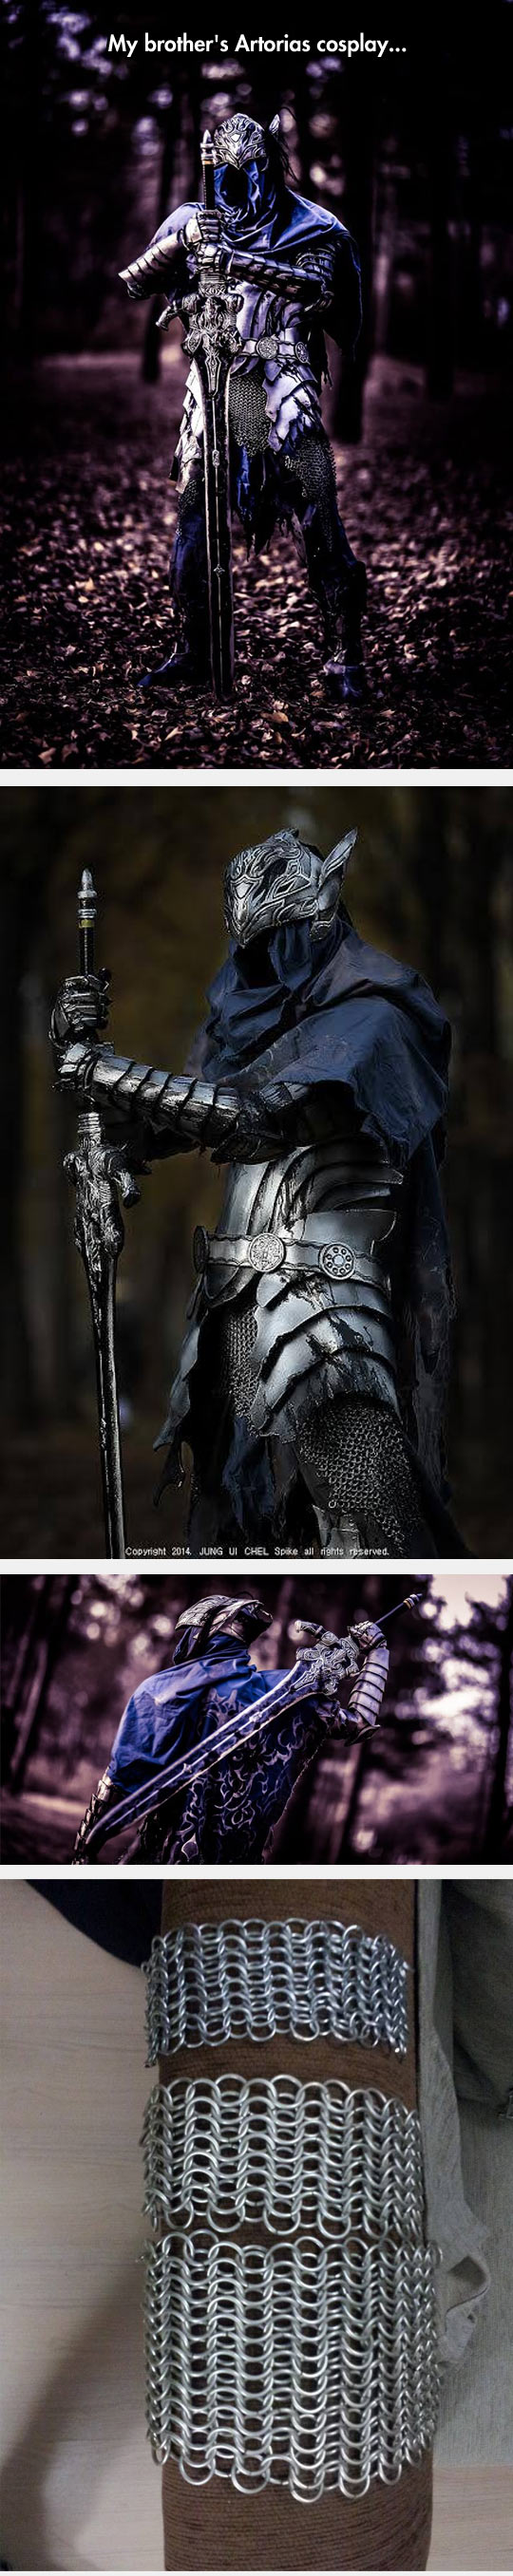 funny-cosplay-brothers-artorias-knight